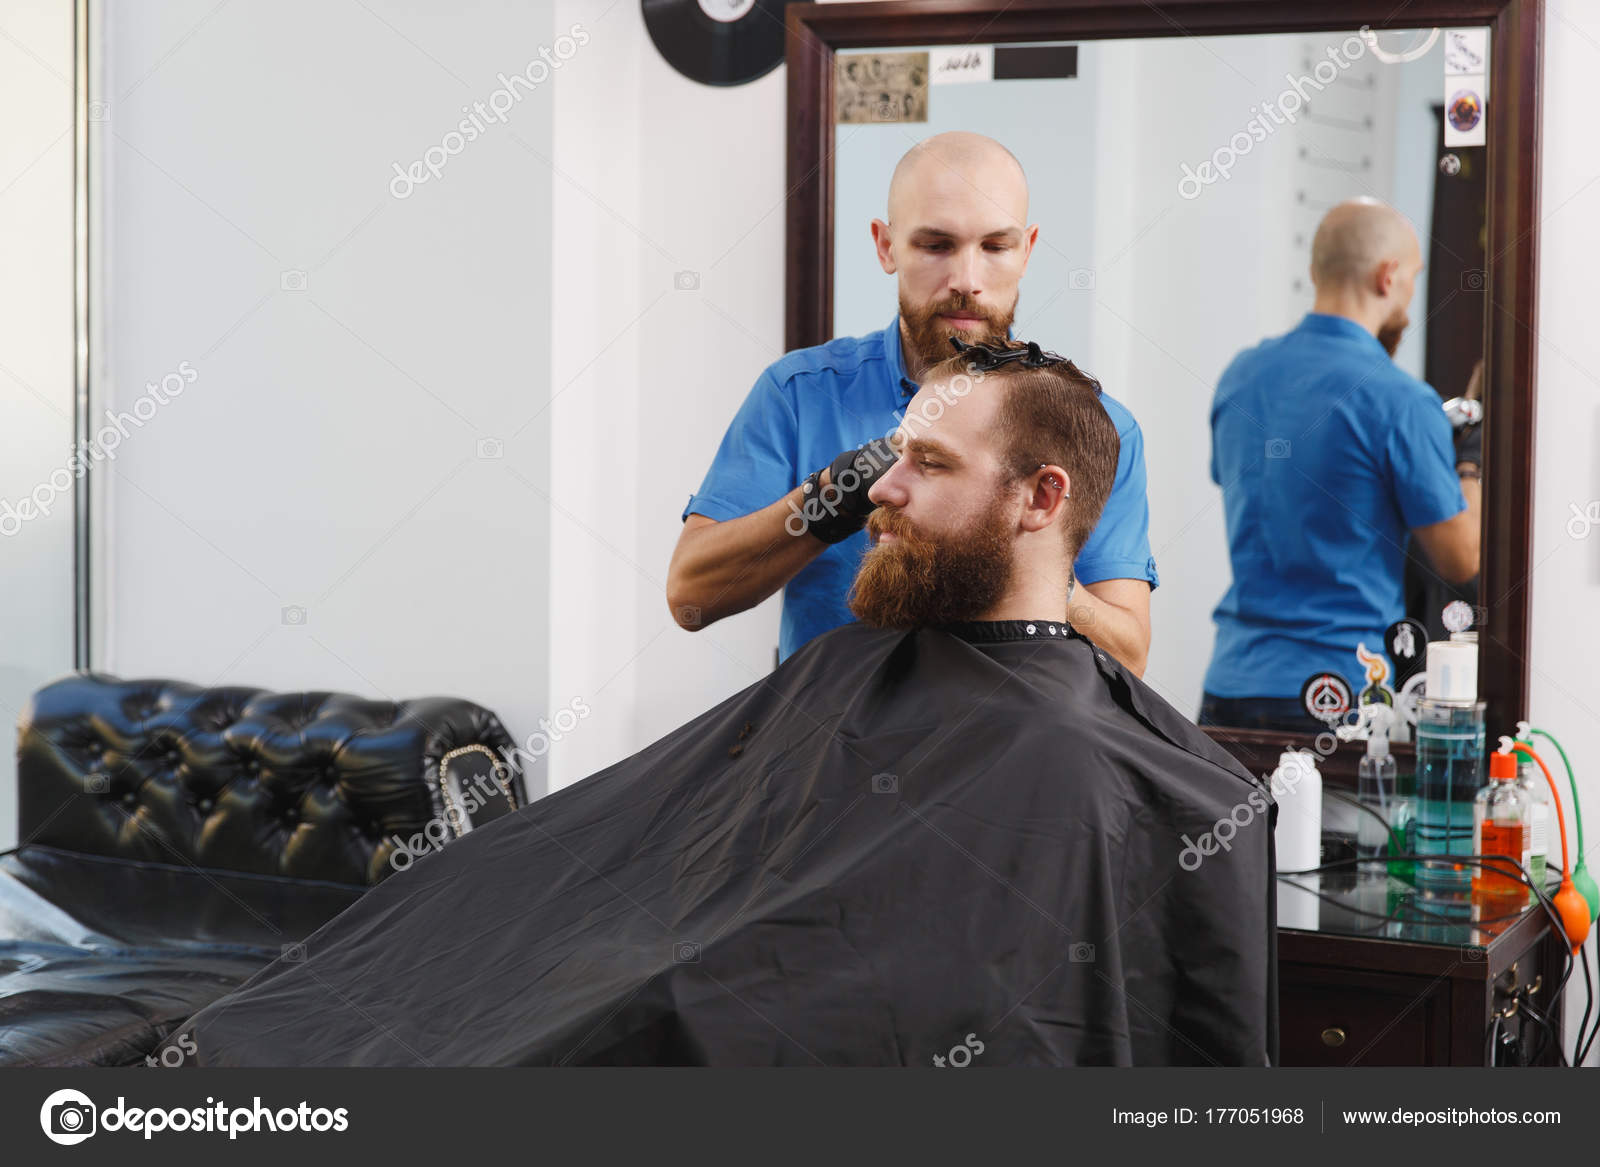 Bearded Man Long Beard Brutal Caucasian Hipster With Moustache On Serious Face Unshaven